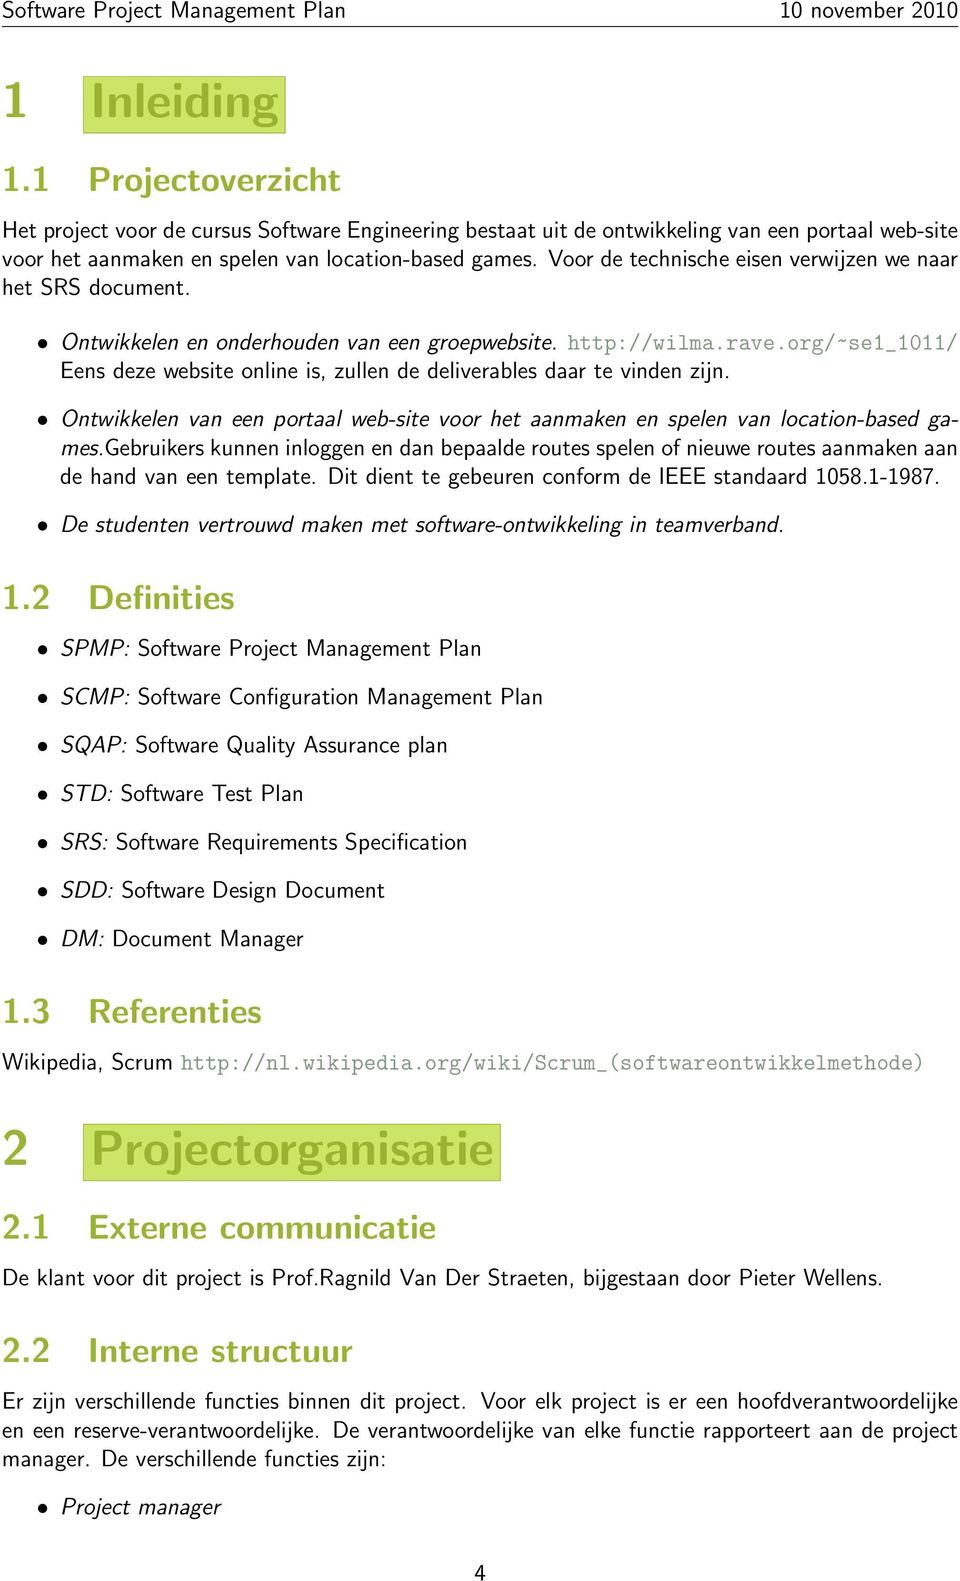 sdd template ieee - software project management plan pdf